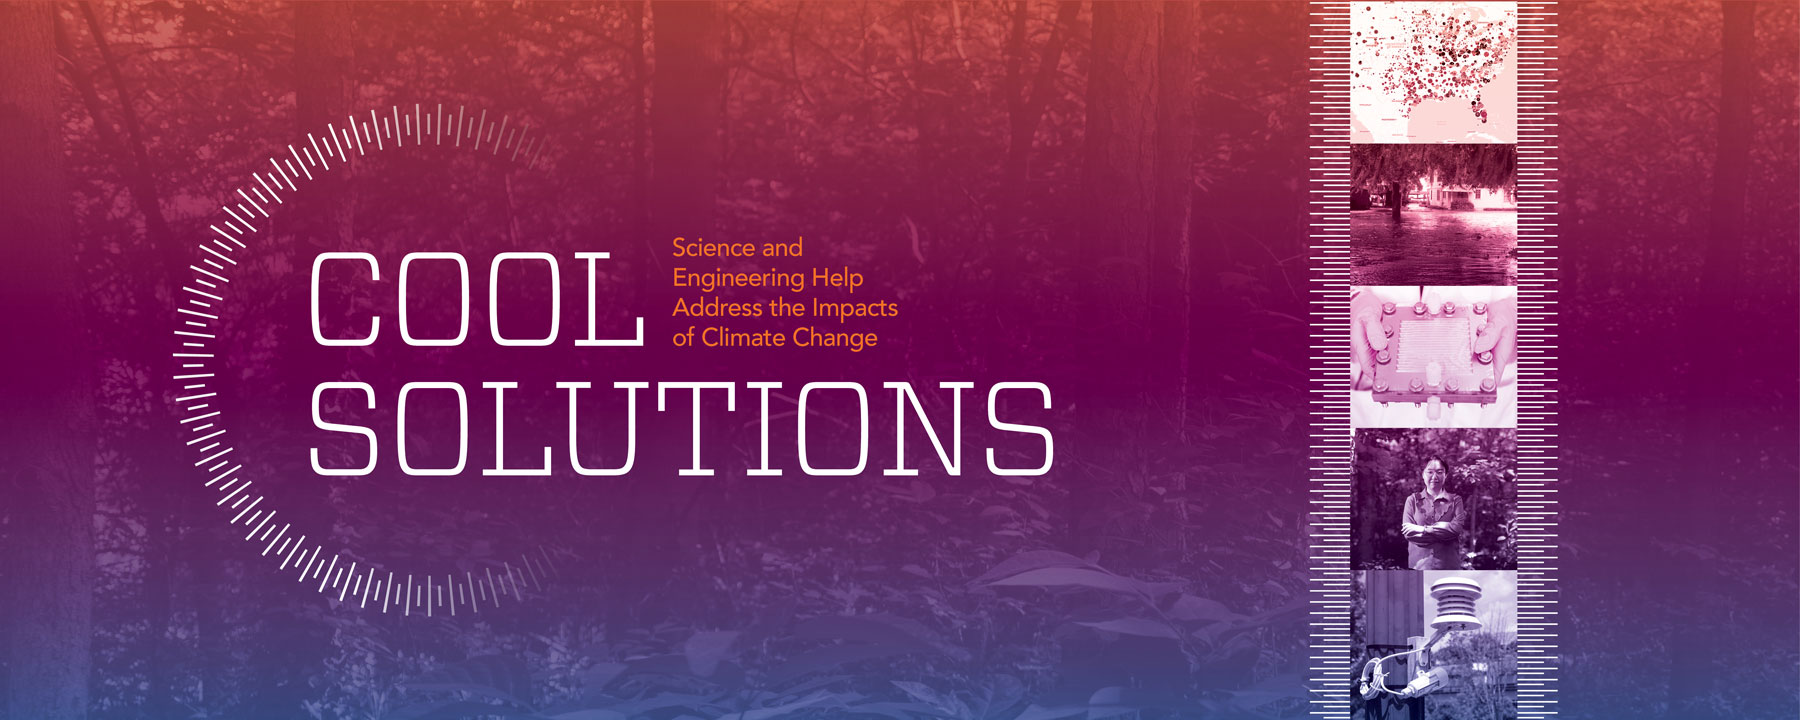 Cool Solutions heading featuring a temperature gradient and images of climate change research